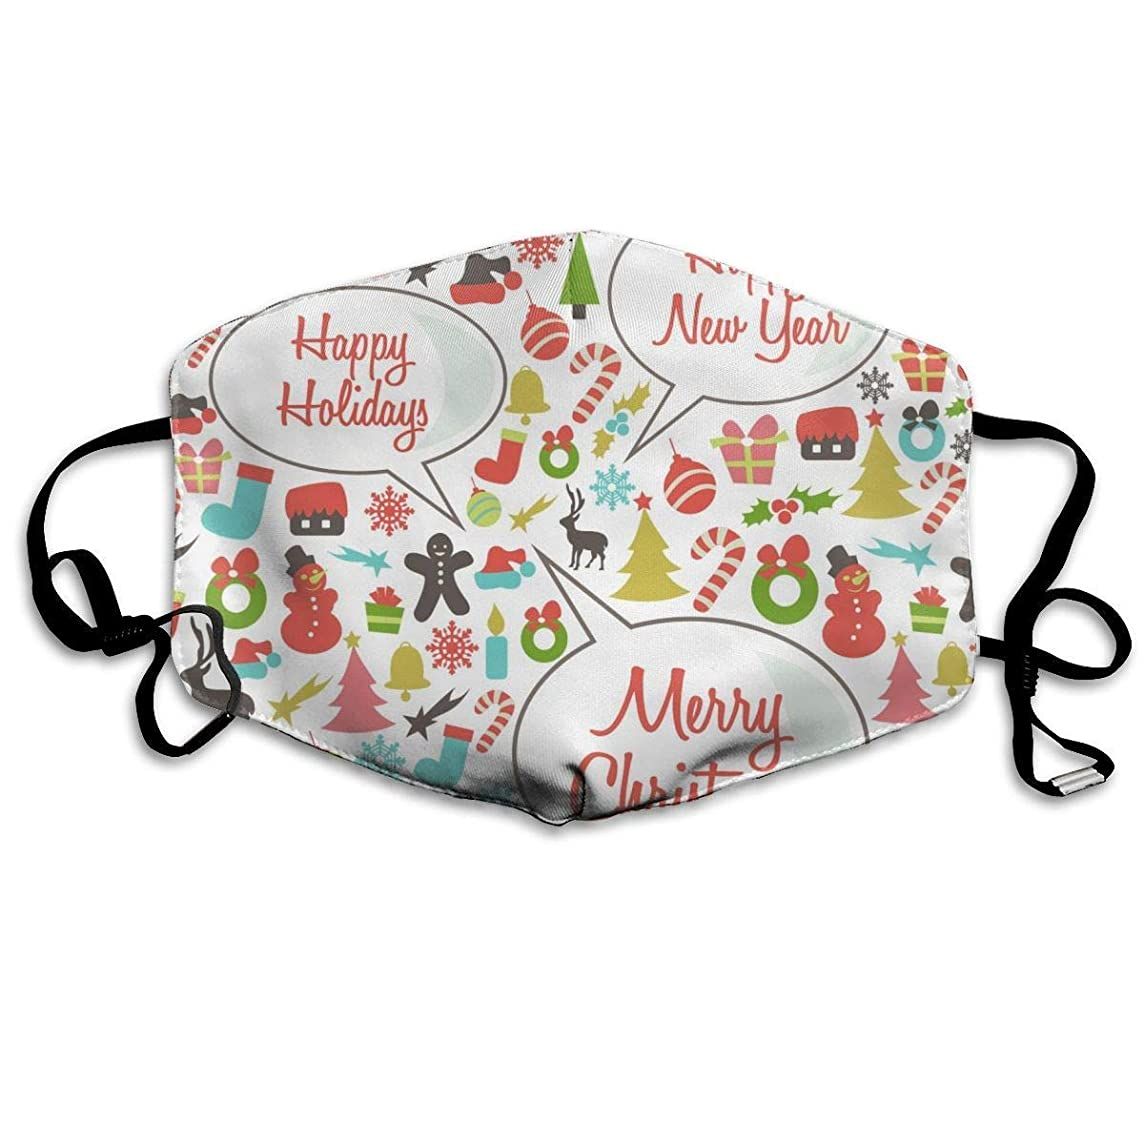 Retro-Happy-Holidays,Anti Dust Half Face Mouth Cover Respirator Dustproof Anti-Bacterial Washable Reusable,Comfy Germ Wind Protective Breath Windproof Mask